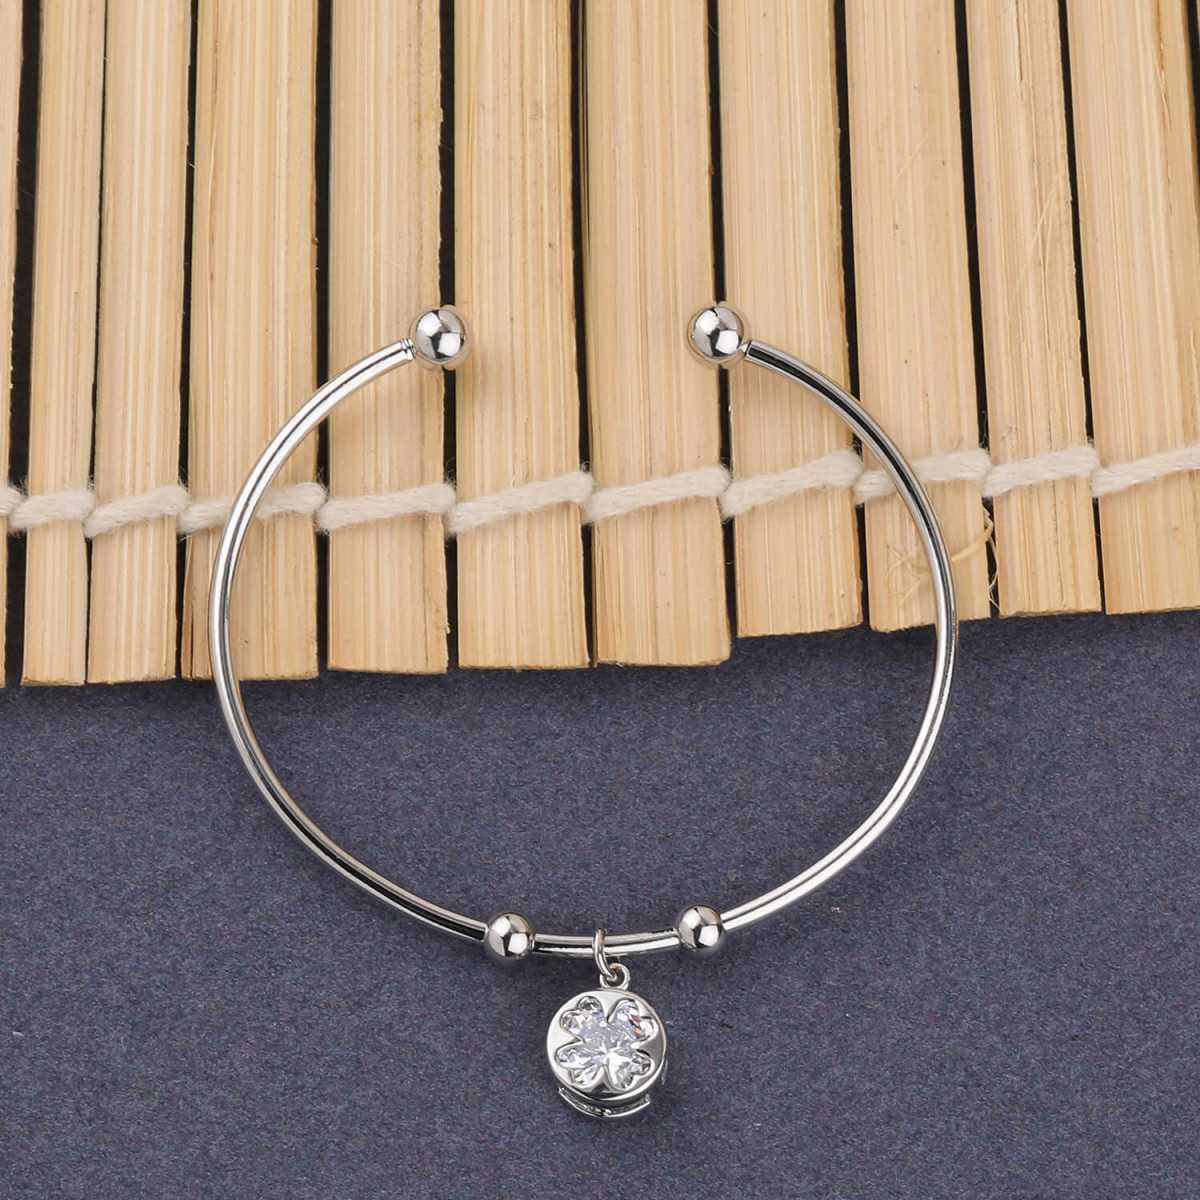 SILVER SHINE Party Wear Elegant Look  Adjustable Bracelet With Diamond For Women Girls